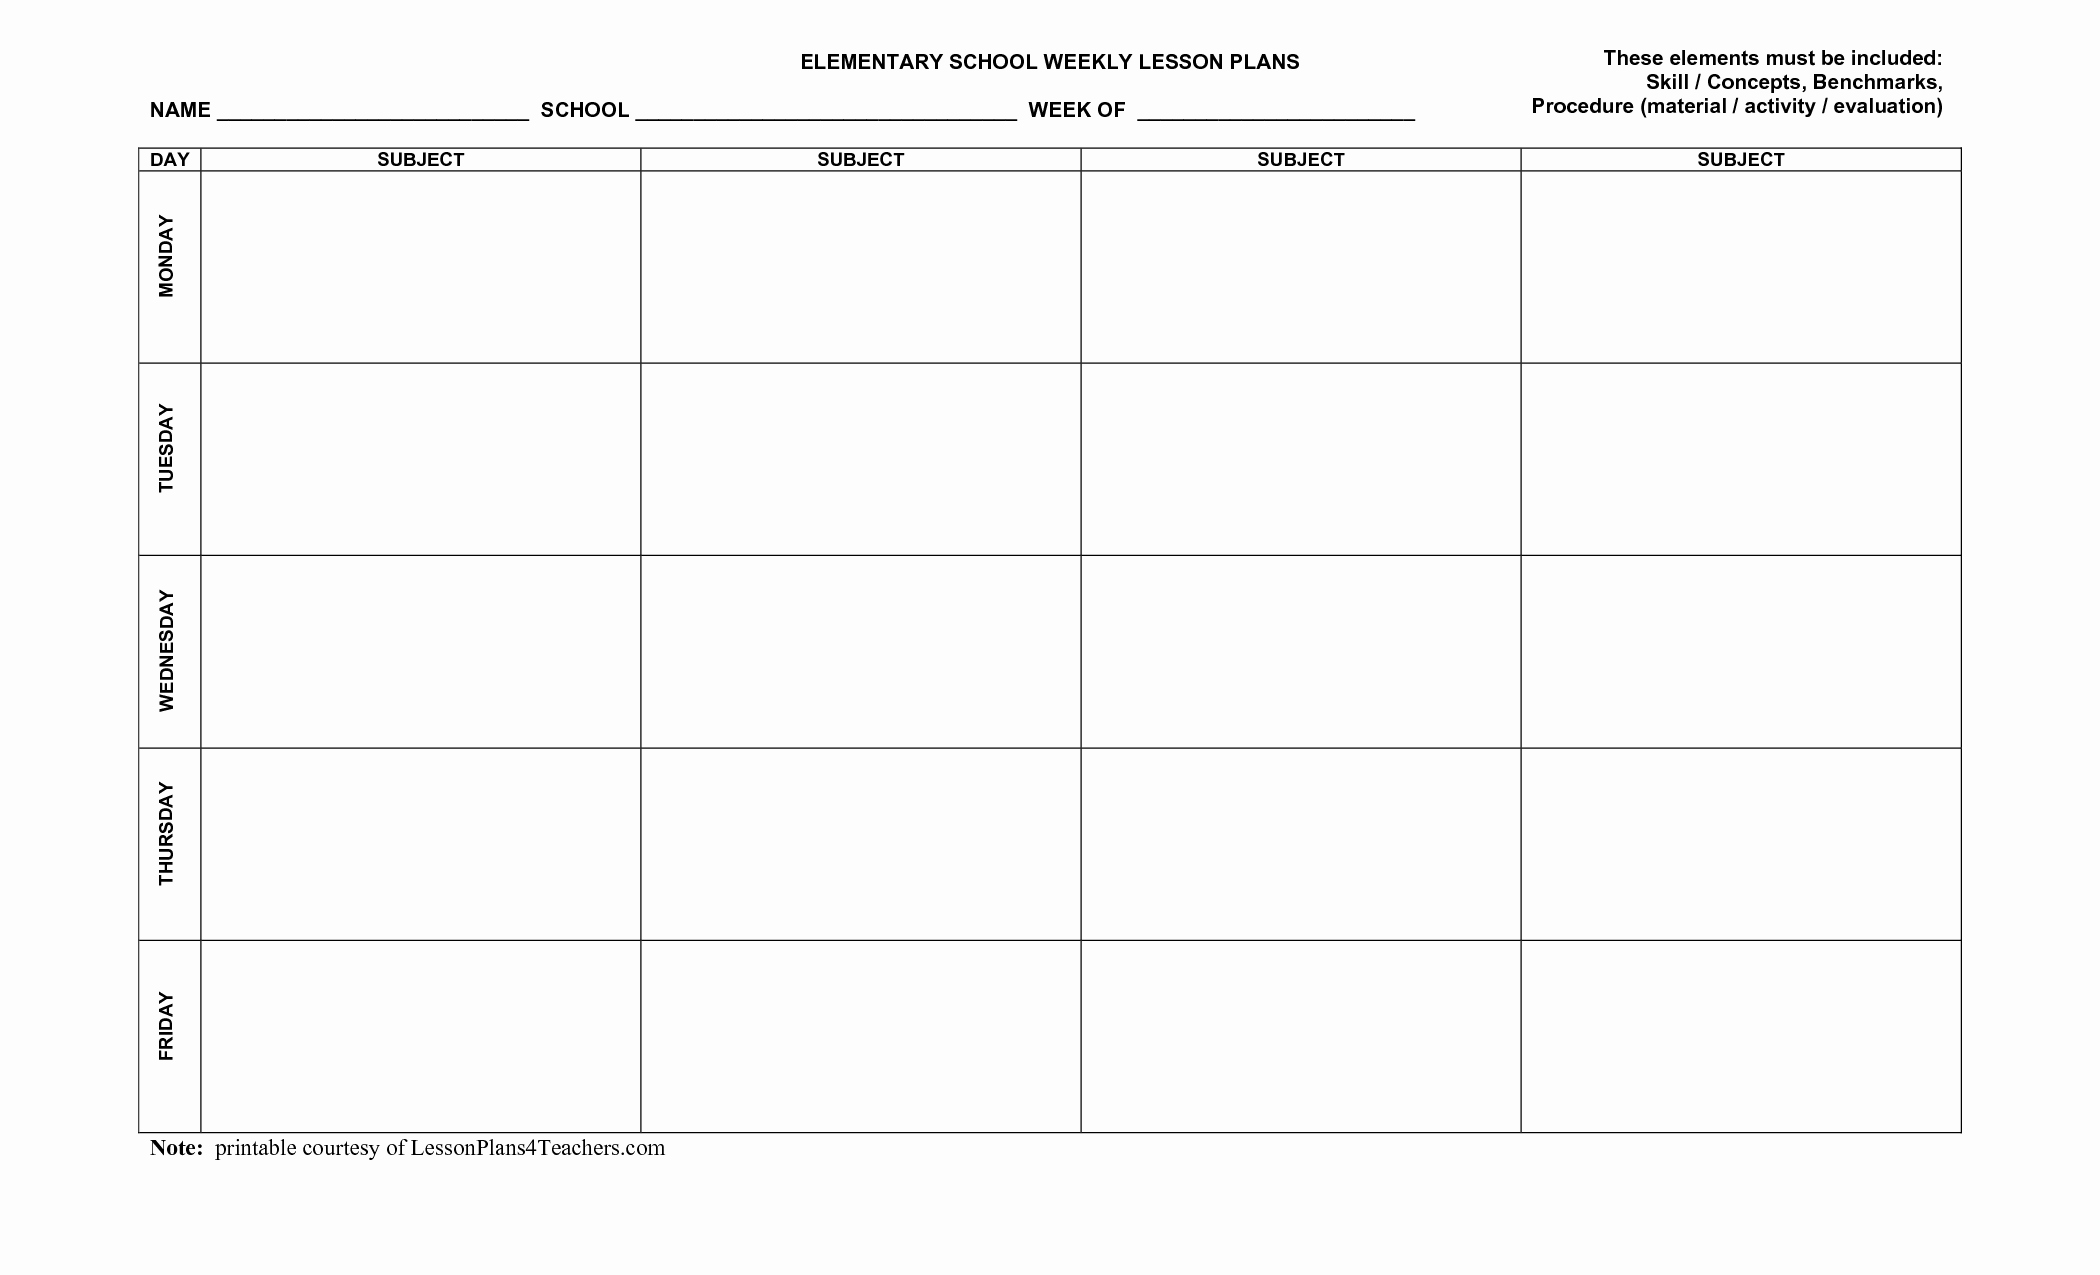 Weekly Lesson Plan Template Pdf Lovely Blank Weekly Lesson Plan Templates Mqfotfas